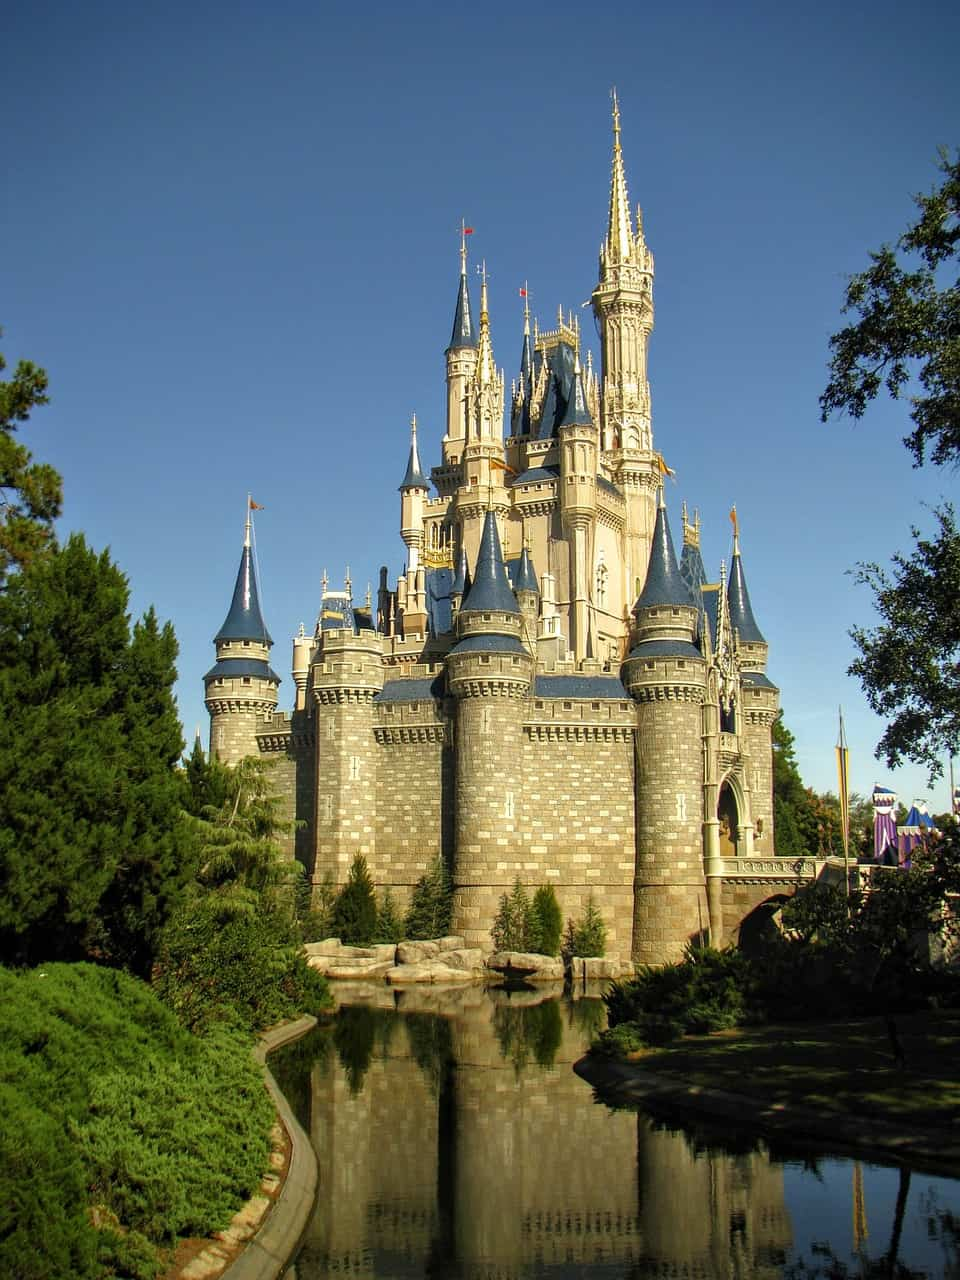 Make your next visit to the Disney World Parks the best it can be with our list of top 5 rides per park